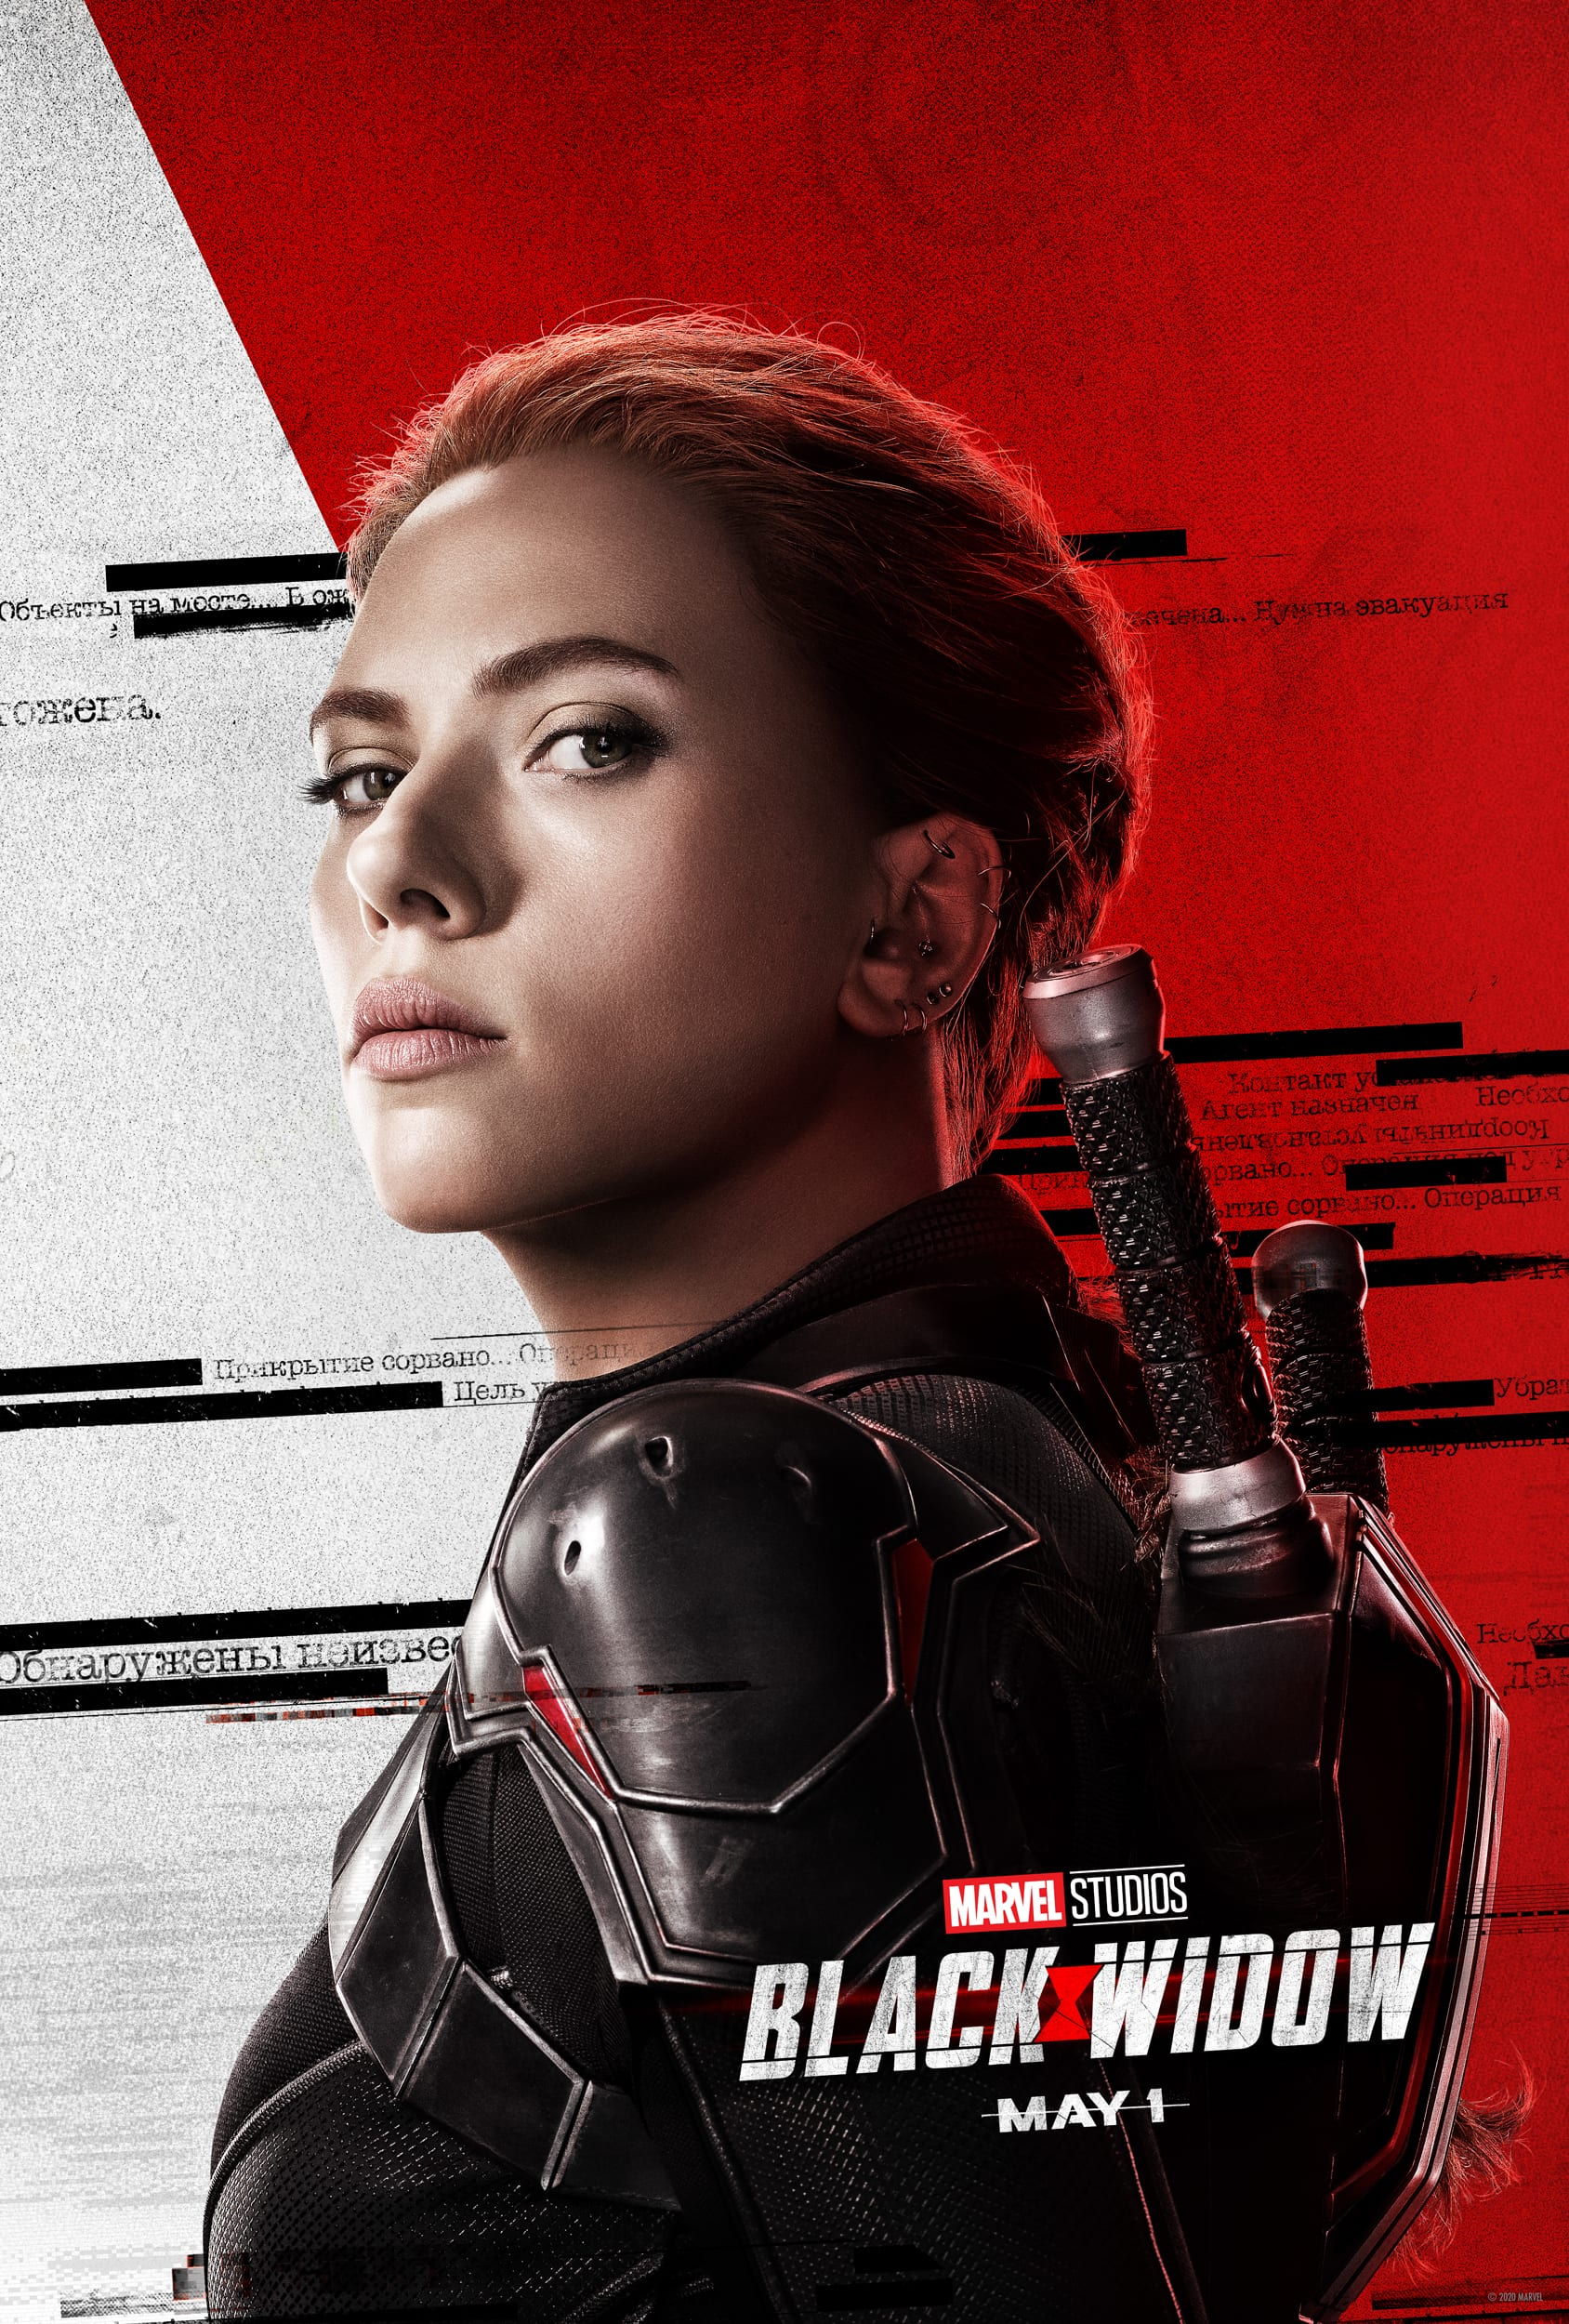 Marvel Black Widow Character Posters Scarlett Johansson as Natasha Romanoff Black Widow